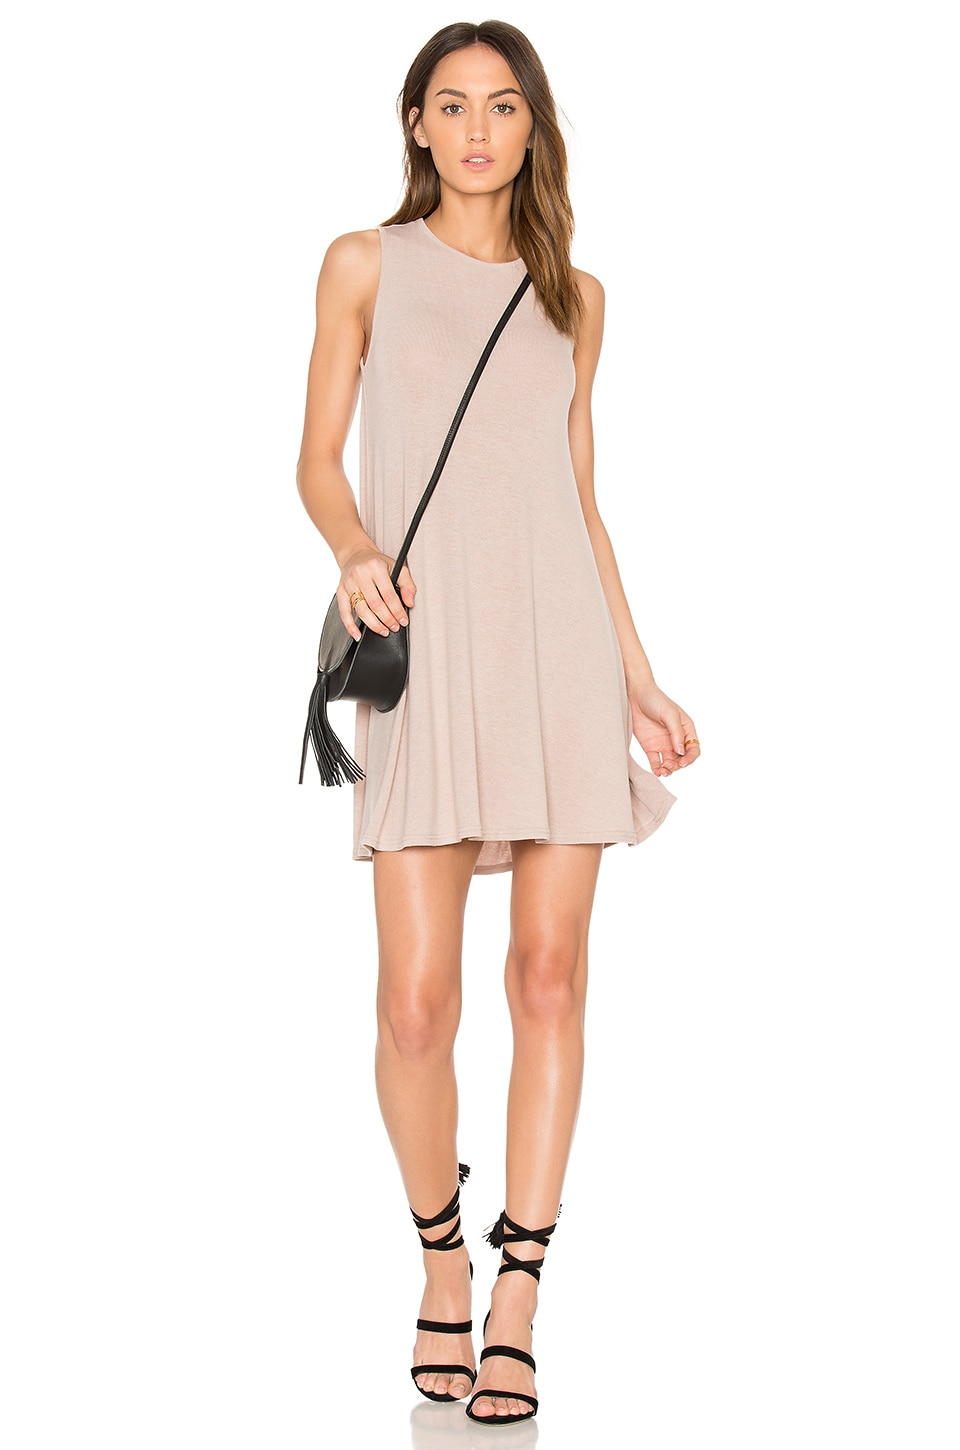 BLQ BASIQ Hacci Swing Dress in Tan